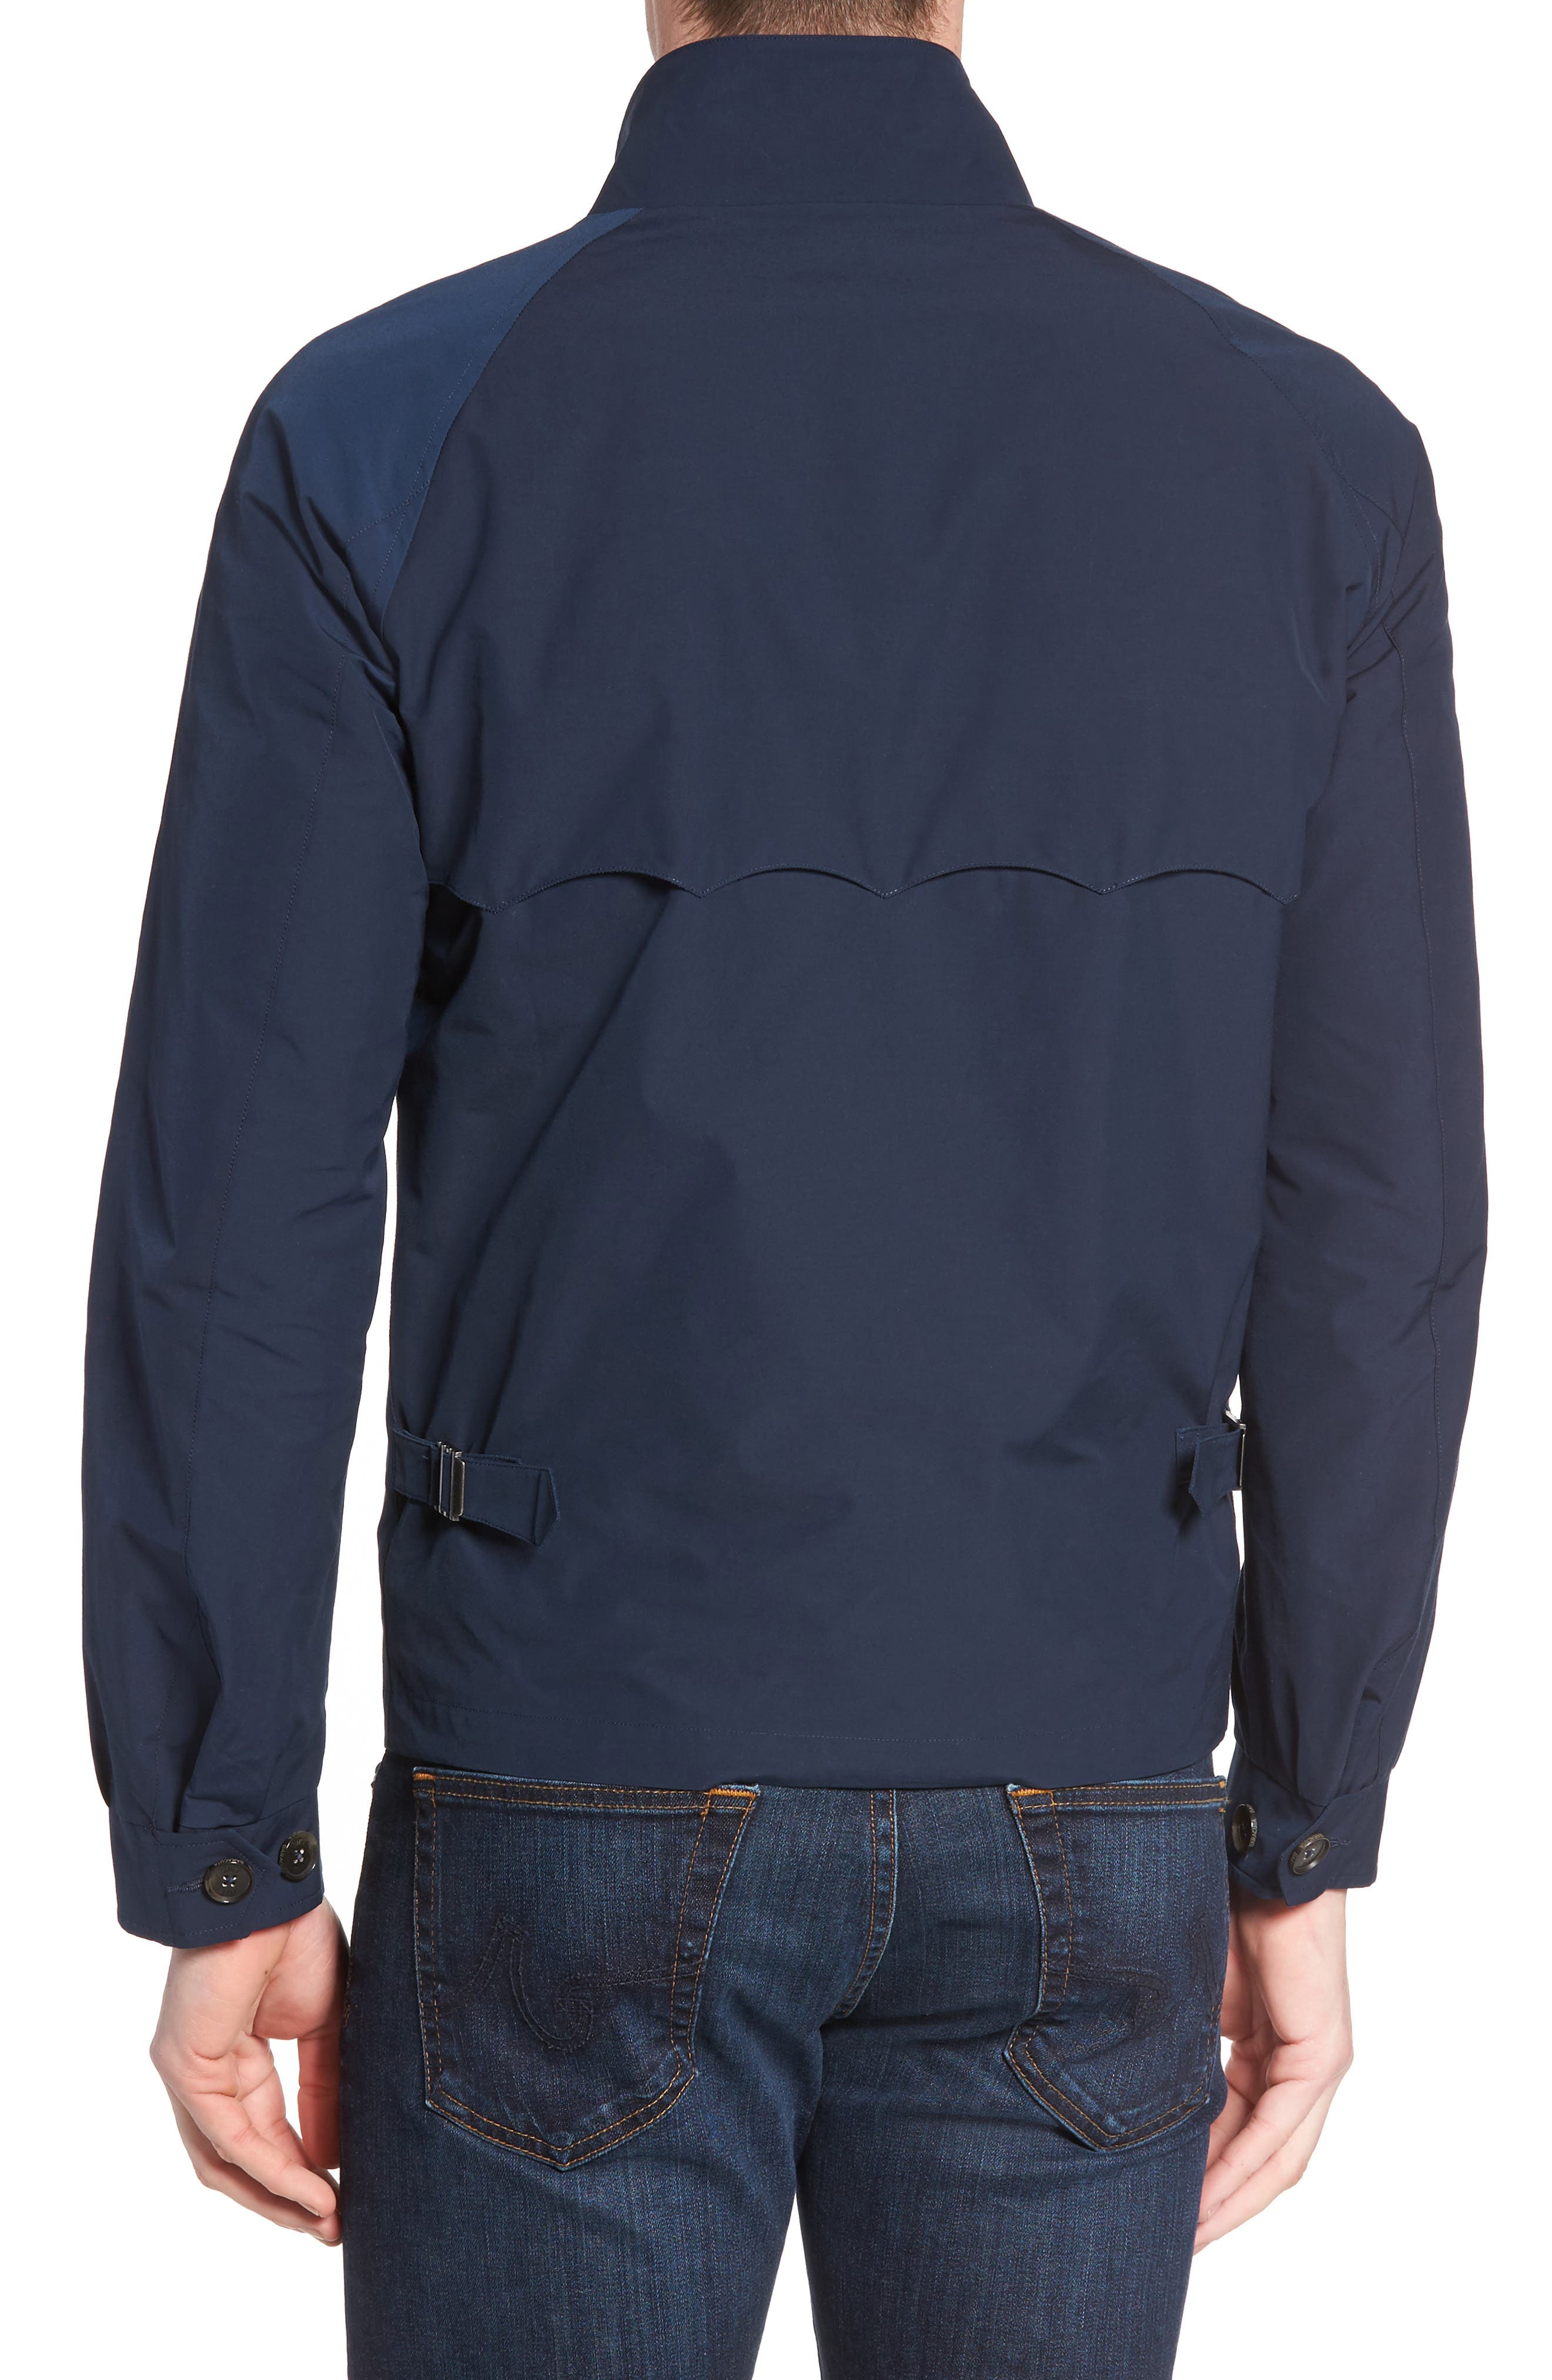 G4 Water Repellent Harrington Jacket,                             Alternate thumbnail 2, color,                             NAVY